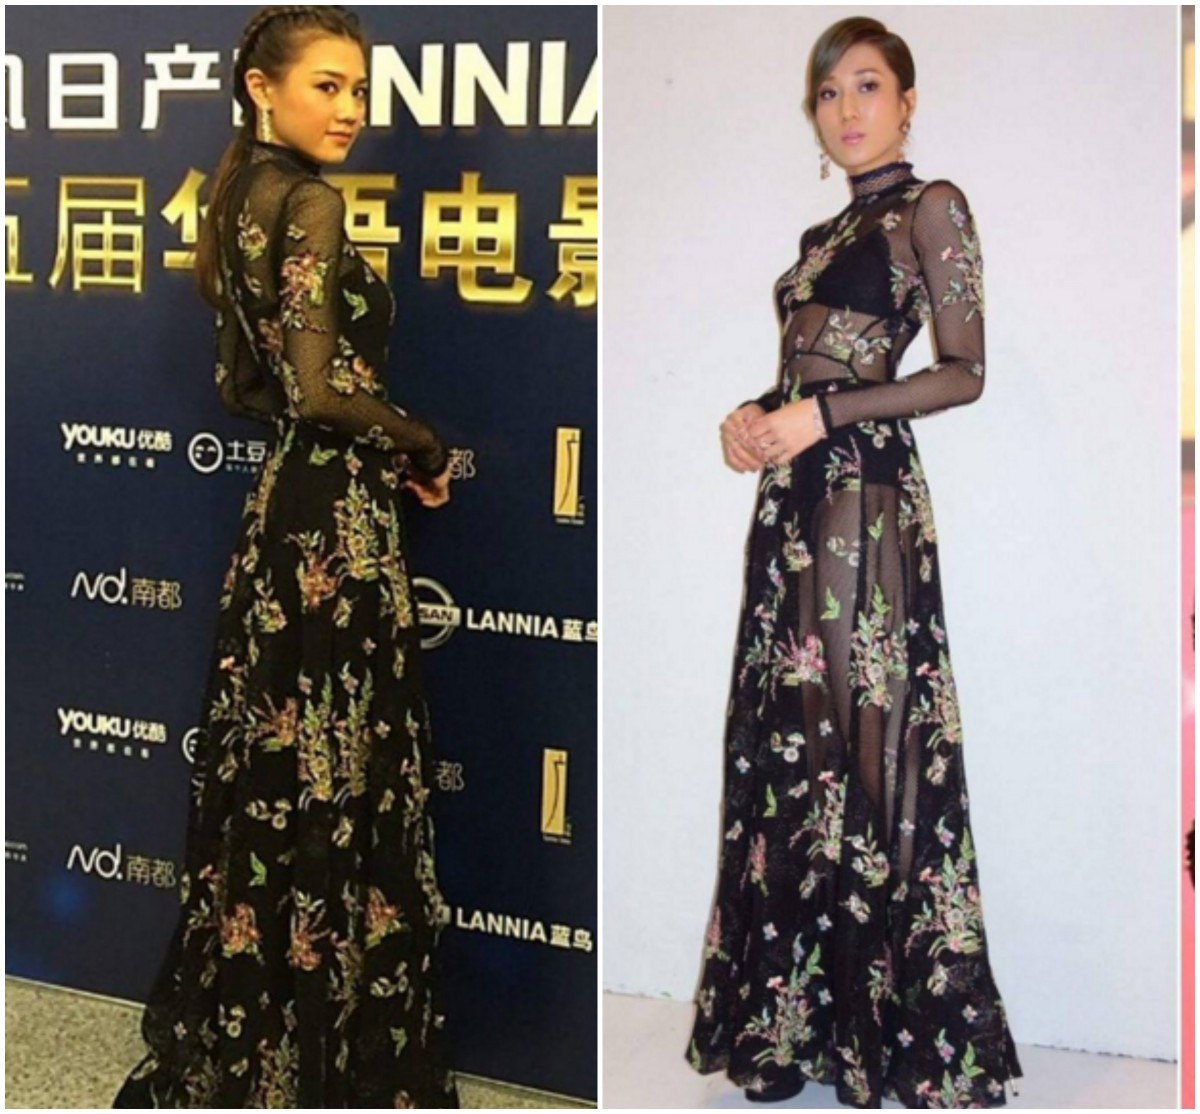 Who Styled Vivienne Tam's Floral Mesh Dress Tastefully? Chrissie Chau vs. Linda Chung